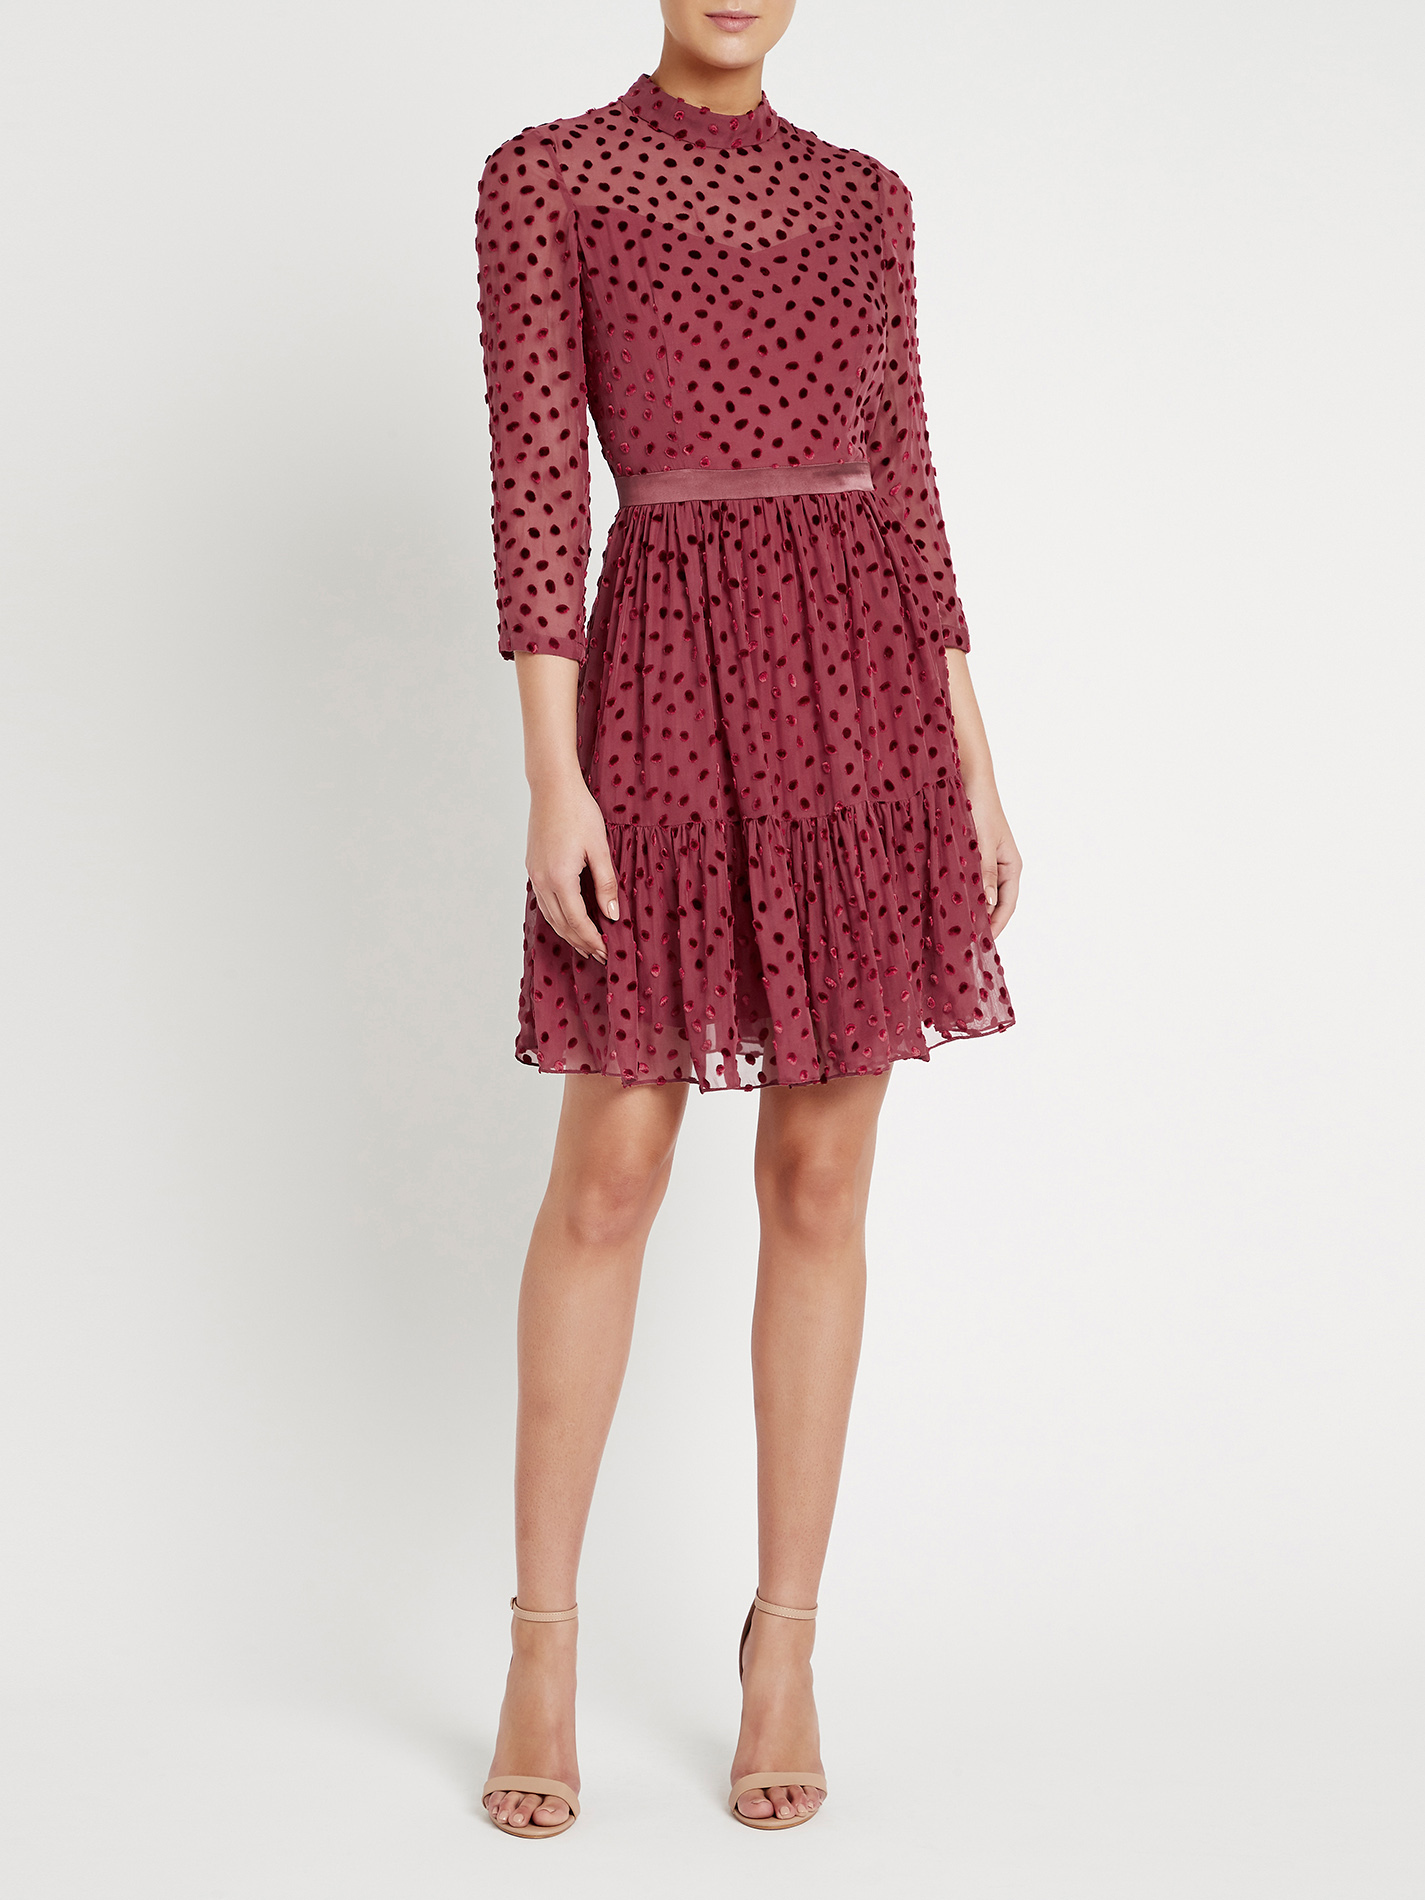 Rebecca Taylor Velvet Dot Dress Red Garmentory